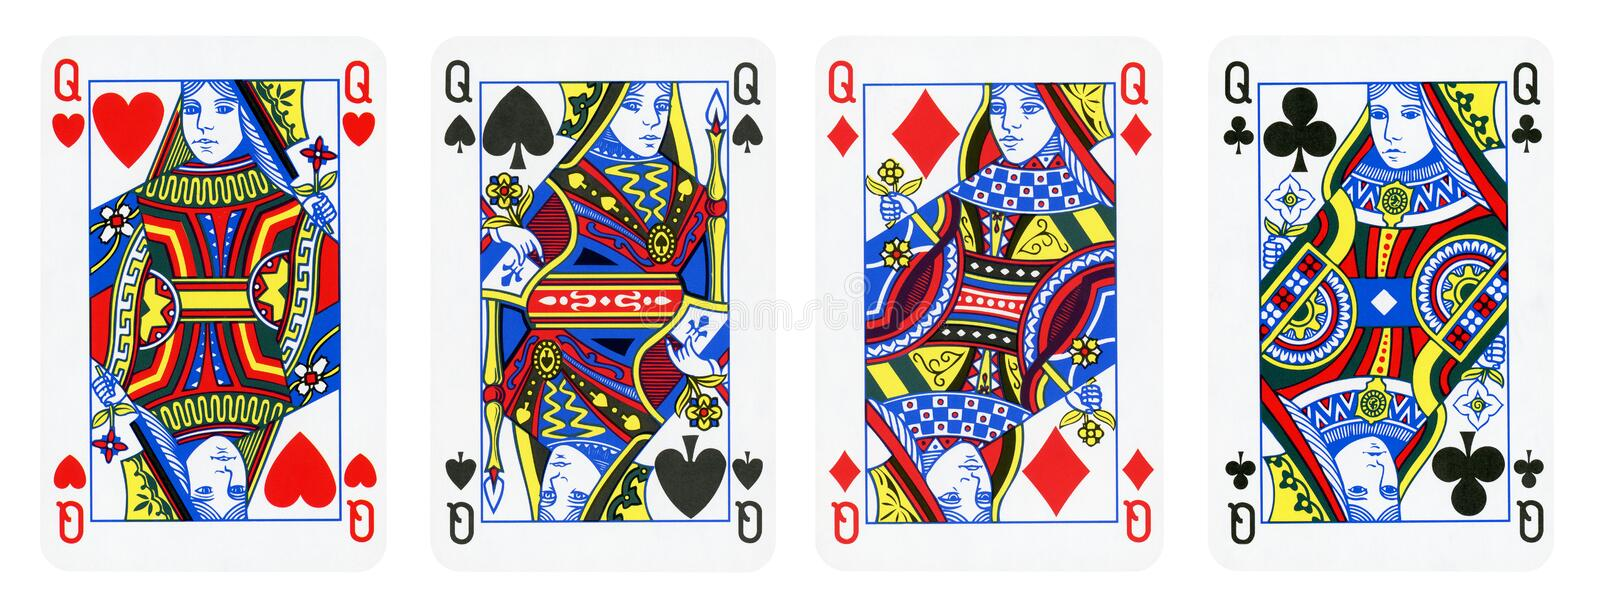 Four Queens Playing Cards - isolated on white royalty free stock photo